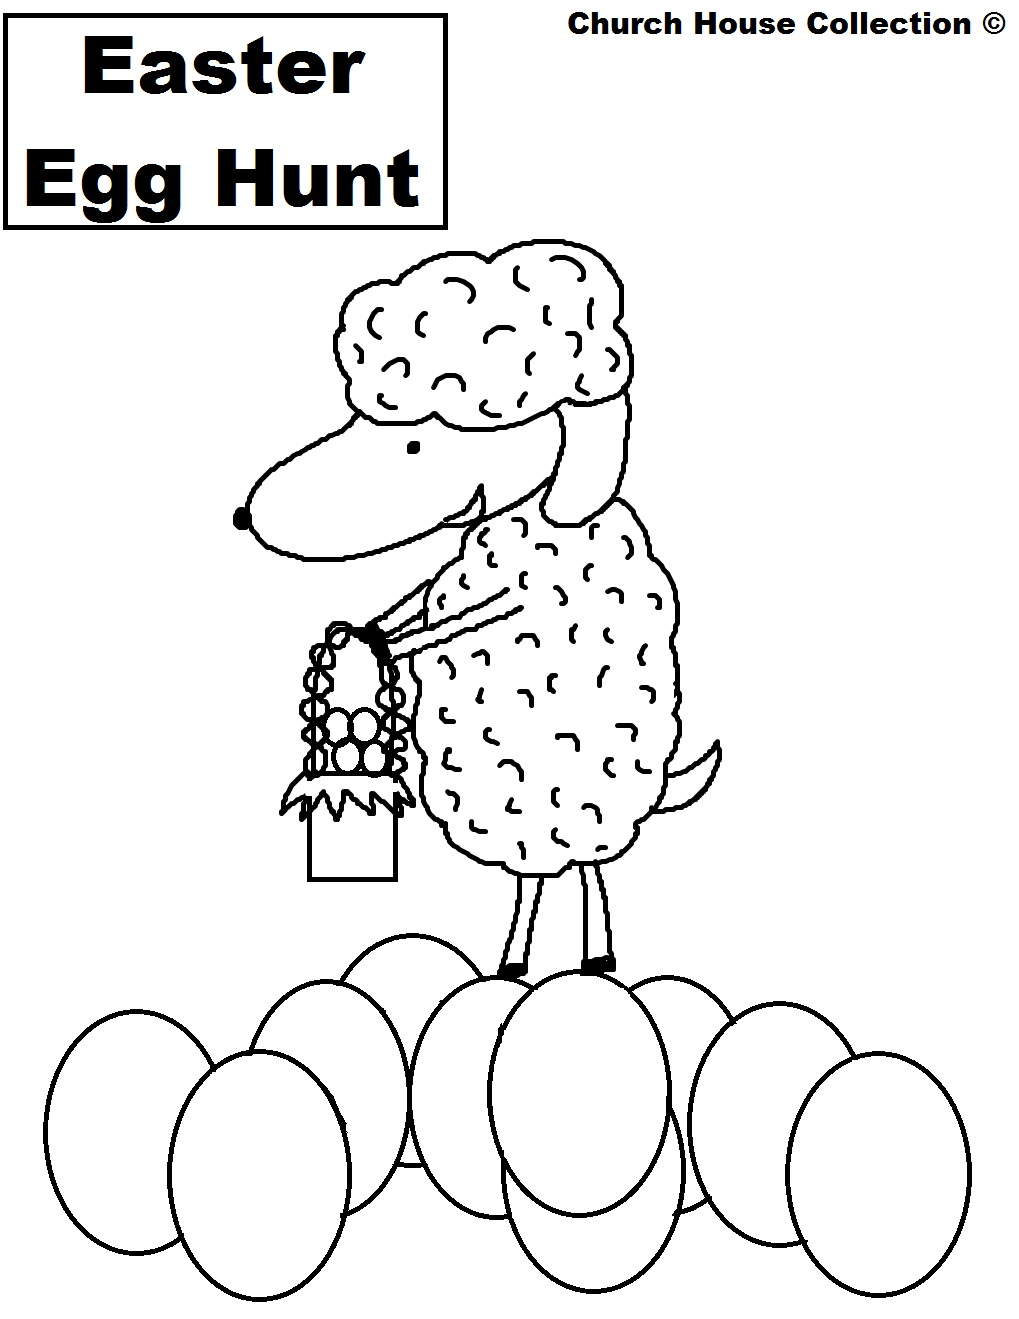 Church House Collection Blog: Easter Egg Hunt Coloring Page